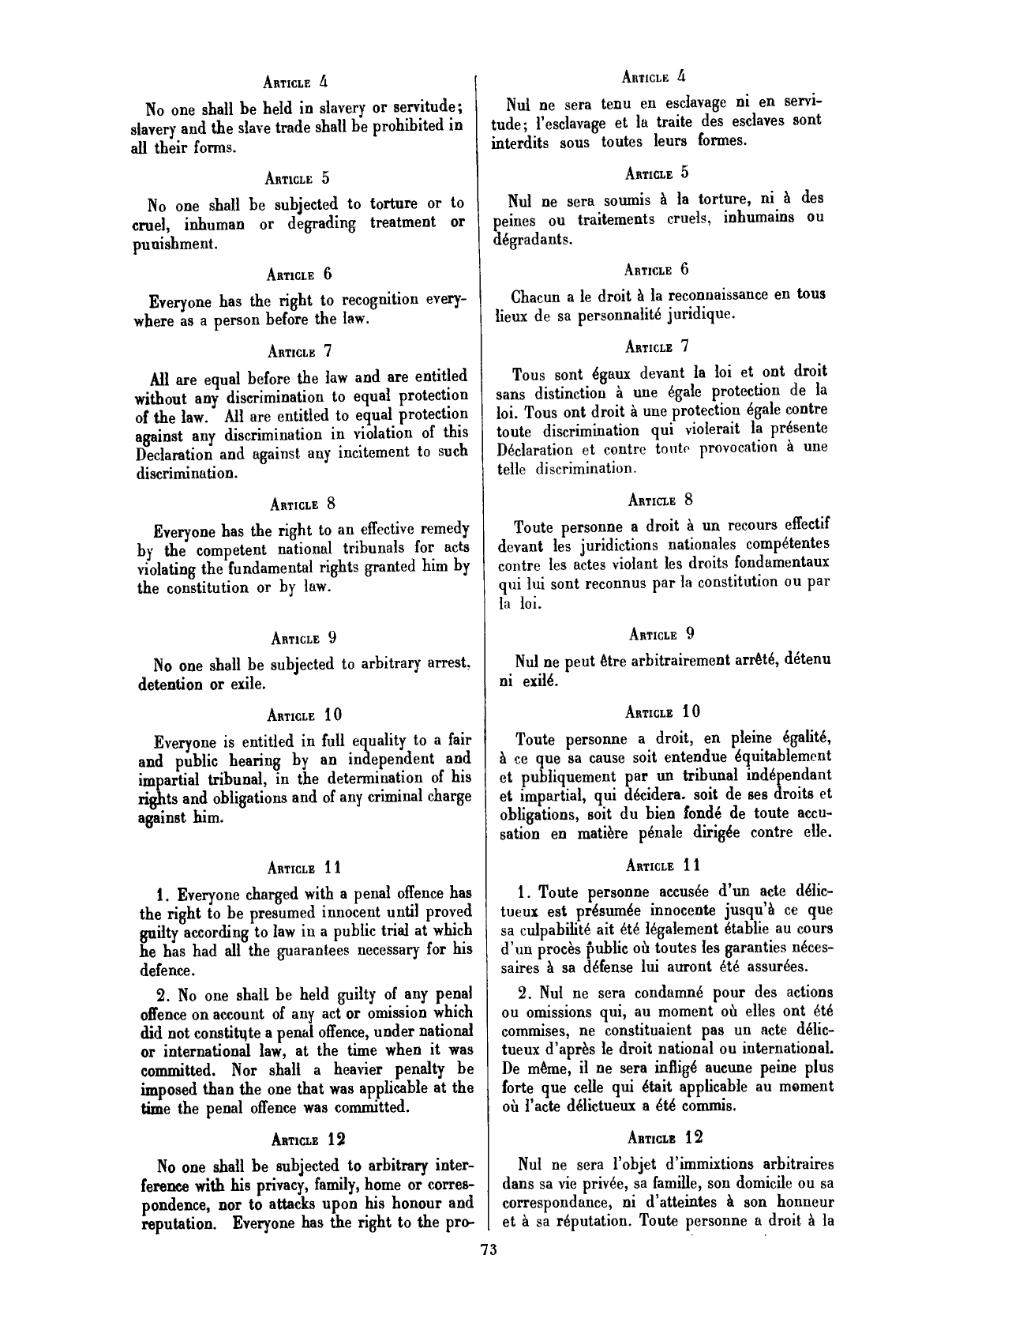 P. C. Chang and the Universal Declaration of Human Rights